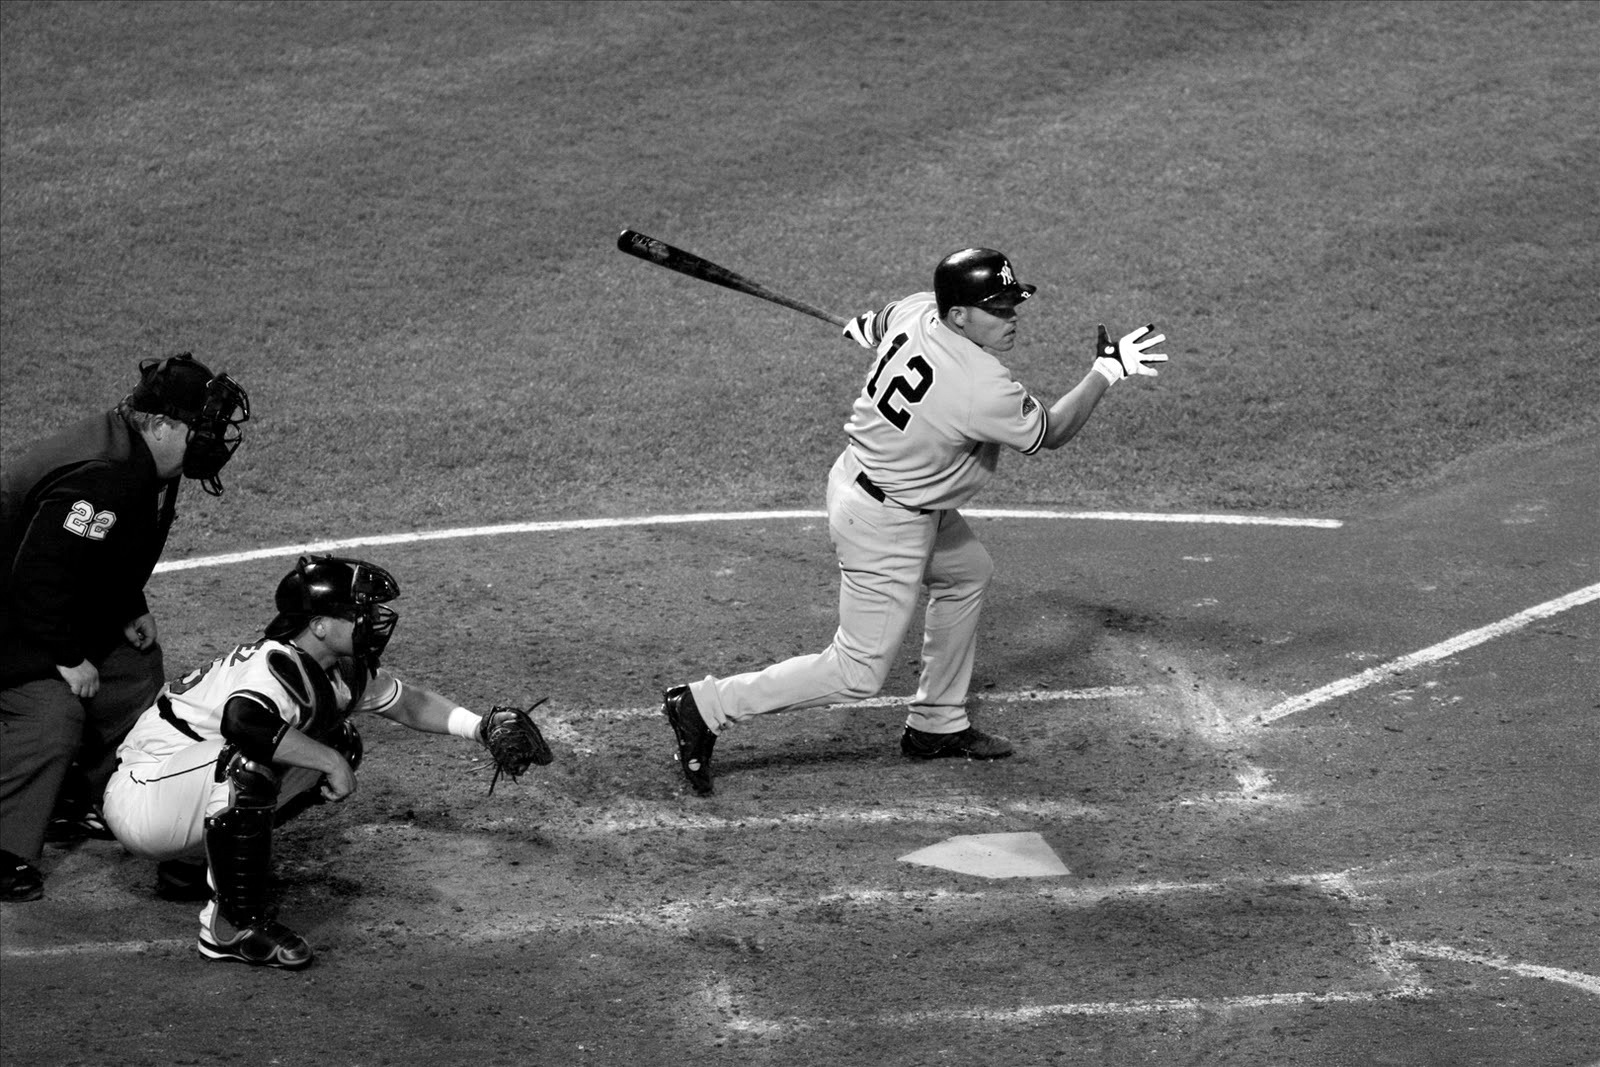 Hitting Baseball black and white HD photos